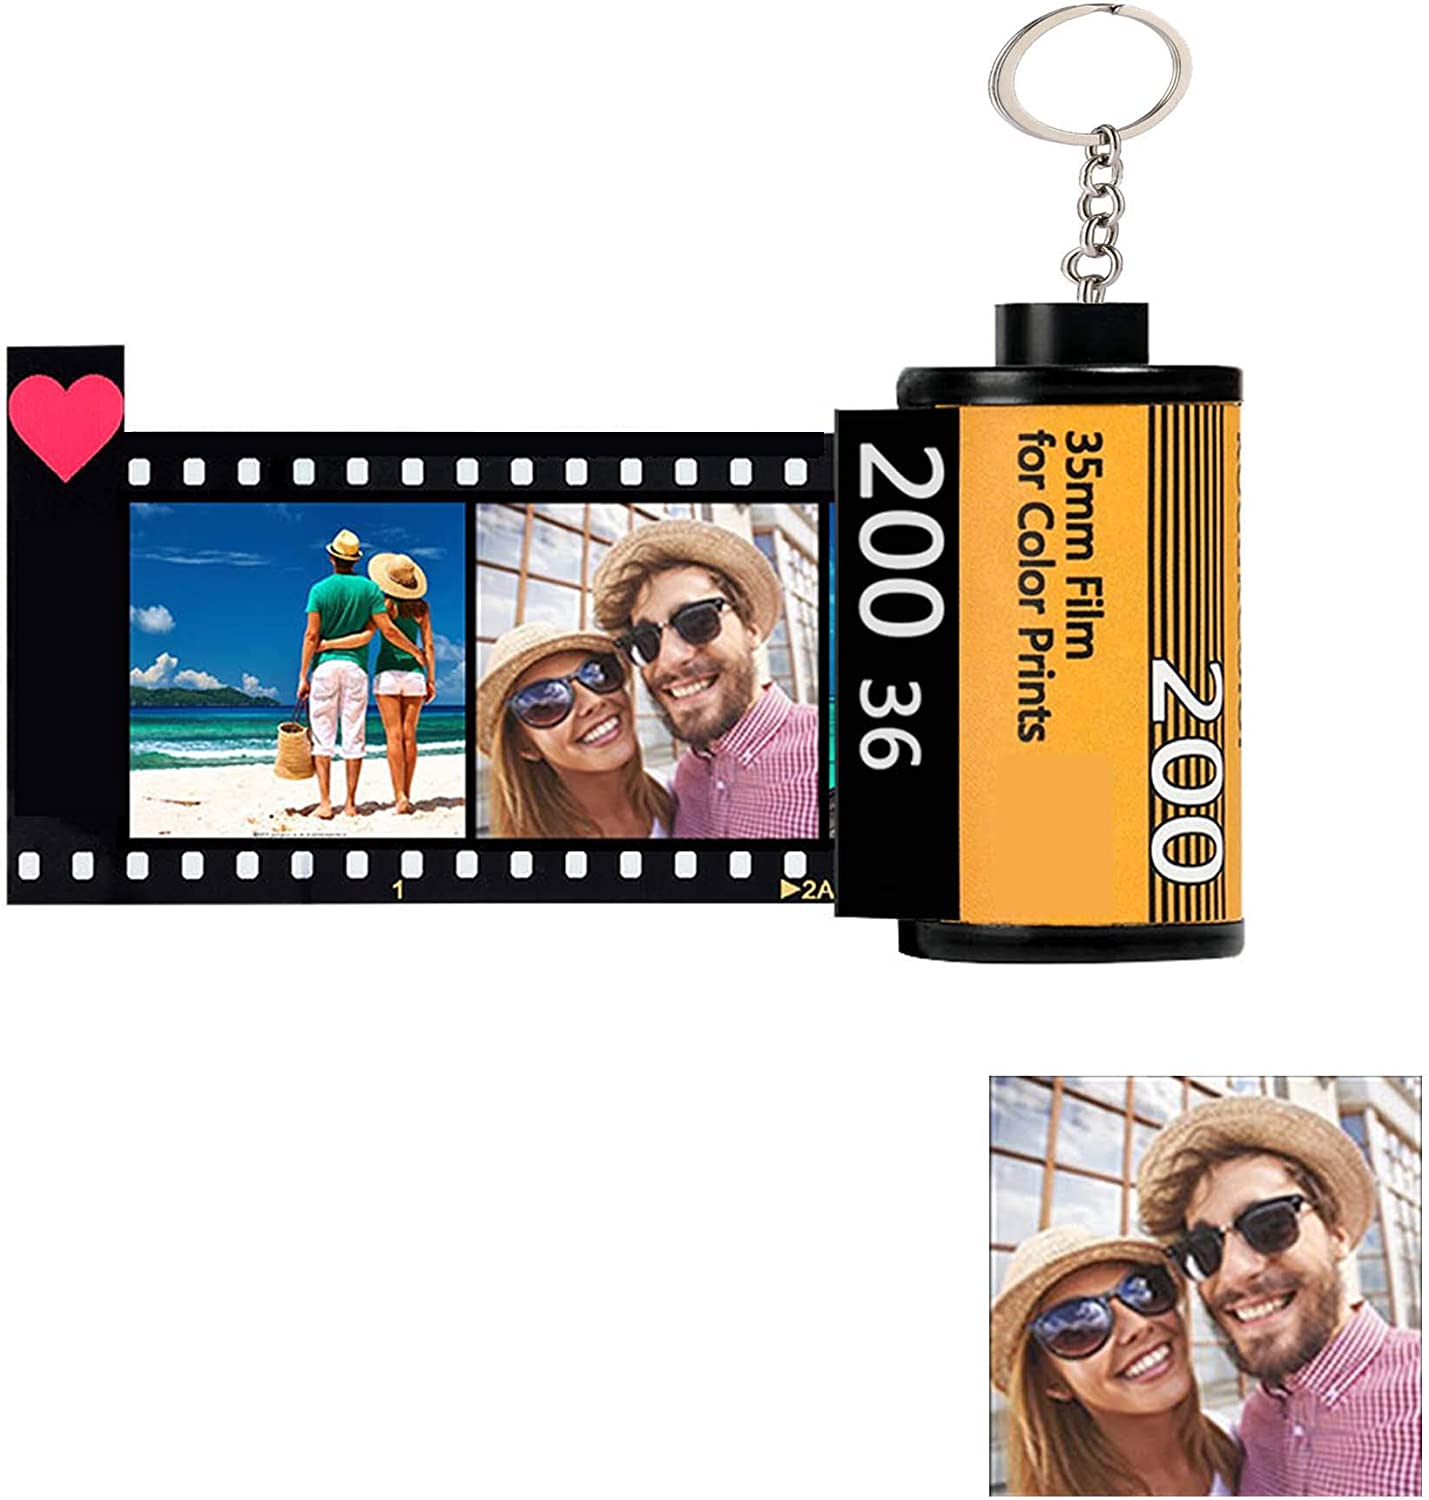 Personalized Keychains with Picture x 10 & Text, Colorful Custom Camera Film Roll Keychain Key Ring Photo Reel Retro Unique Christmas Birthday Holiday Gift for Lover Dad Mom Kids Friend